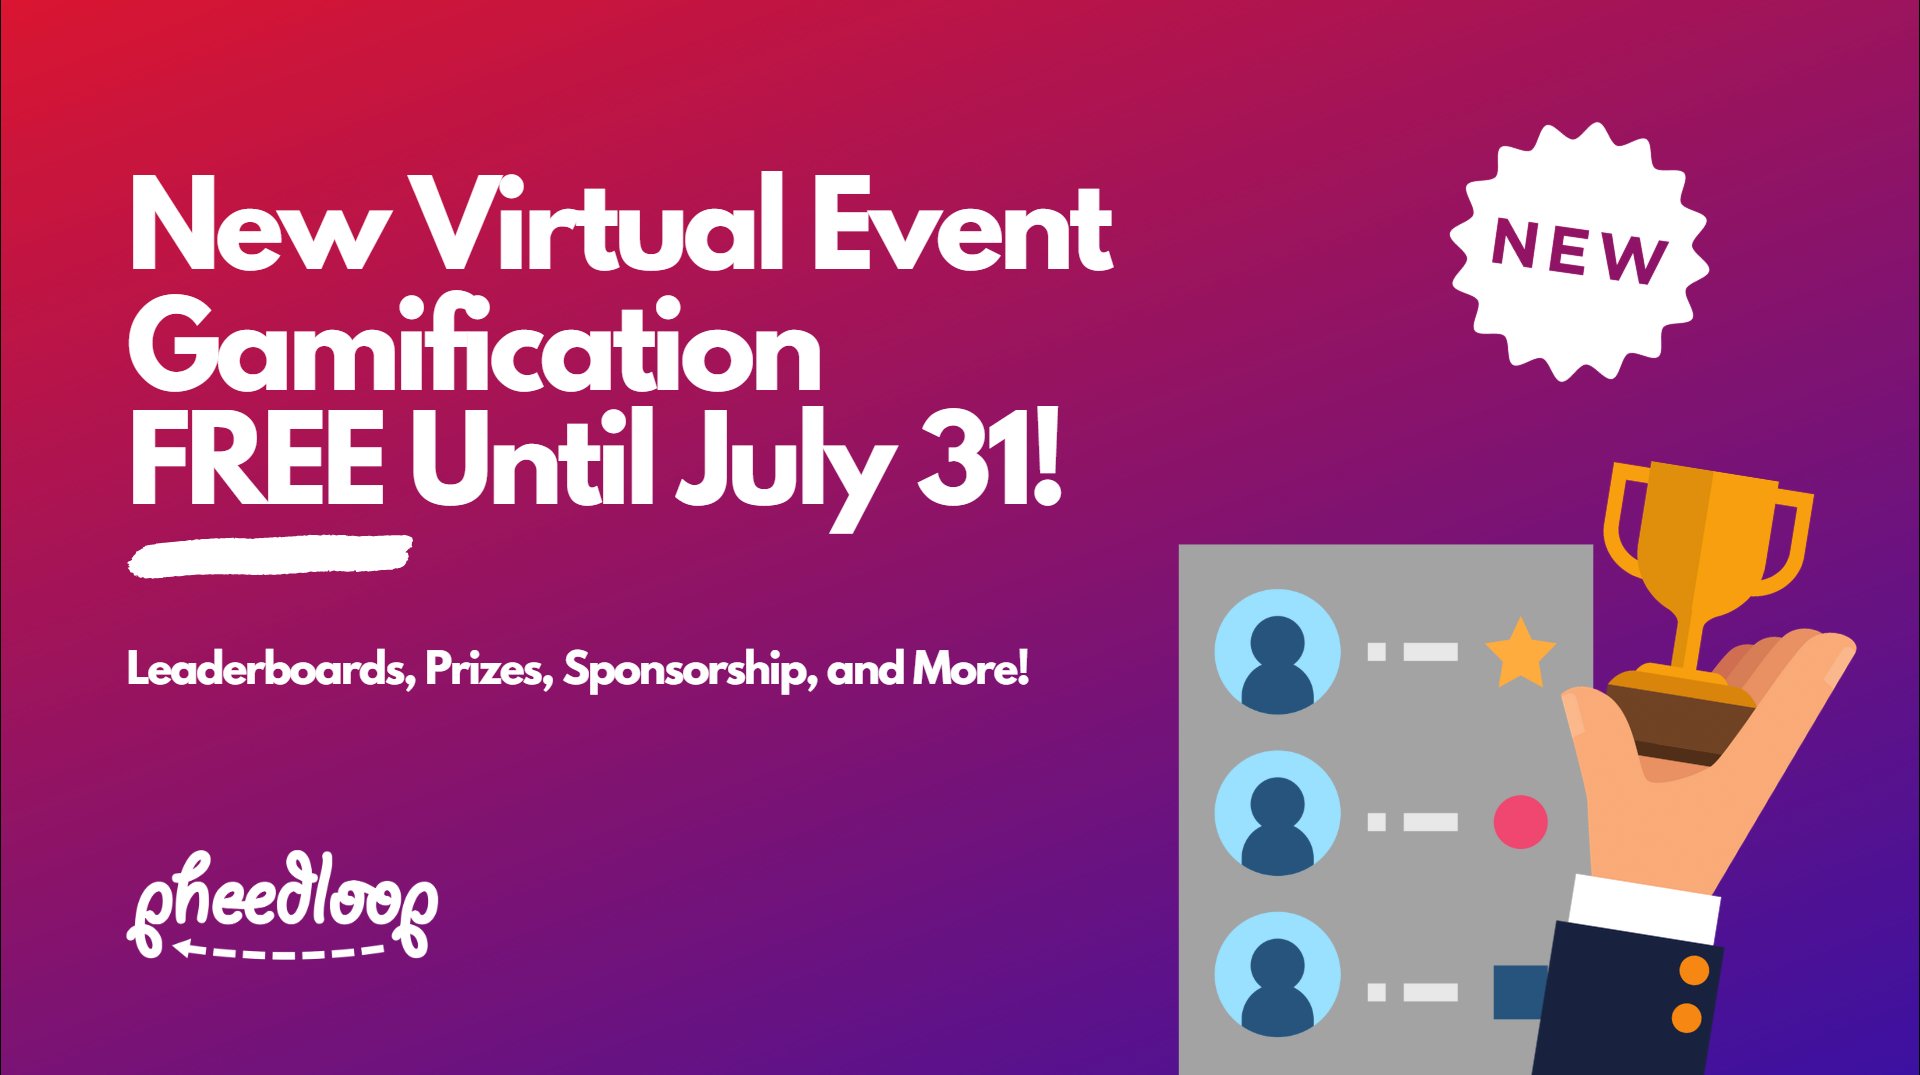 New Virtual Event Gamification, FREE until July 31st! Leader Boards, Prizes, Sponsorship, and More!